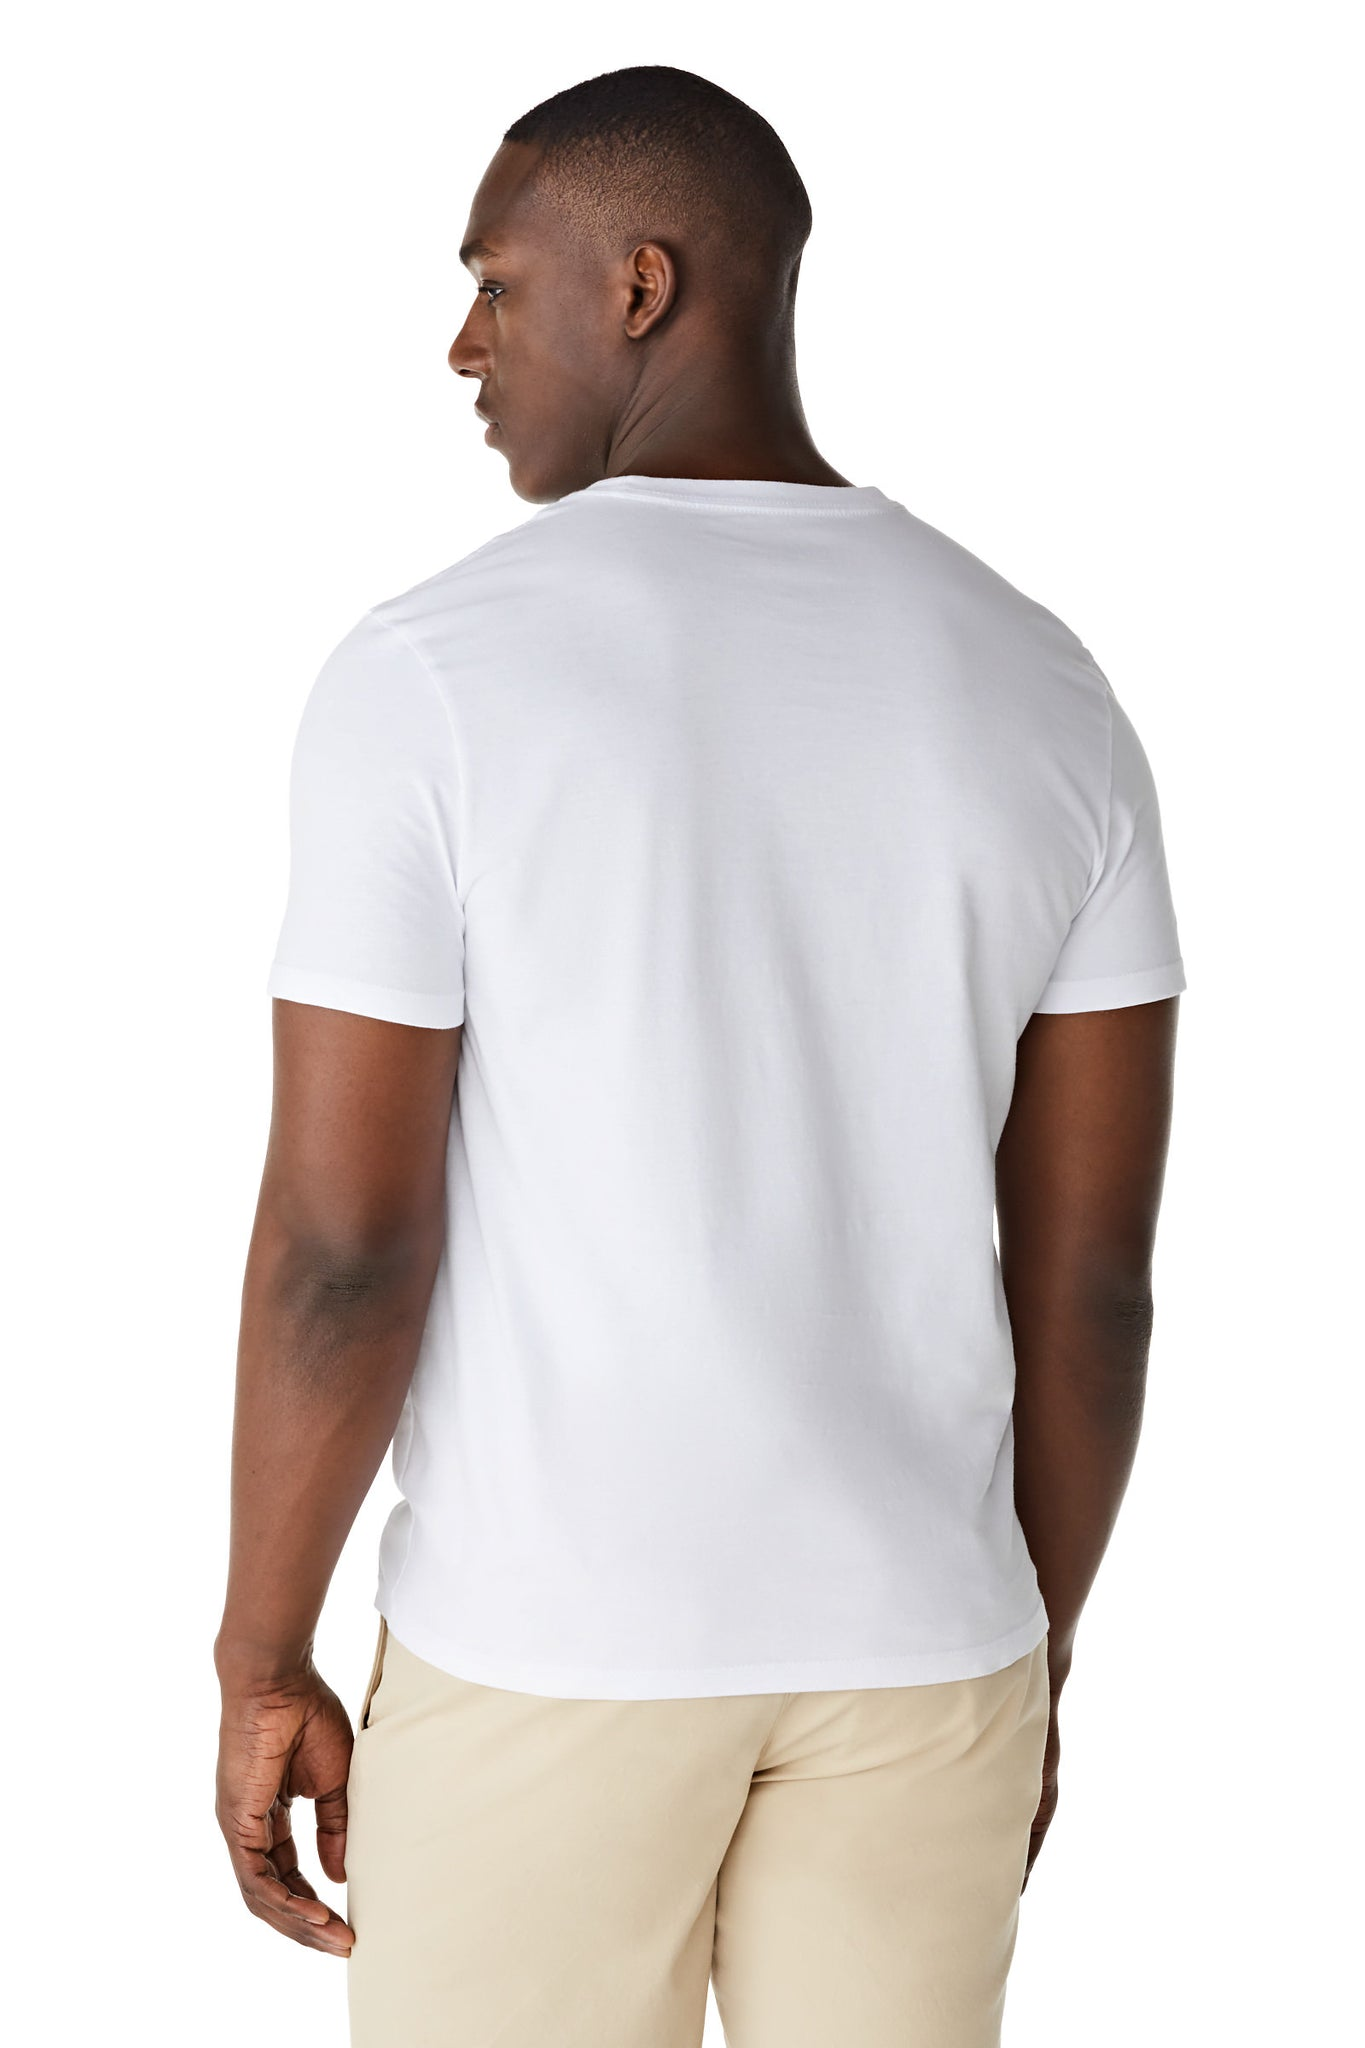 McG Regular fit T-shirt with palm print